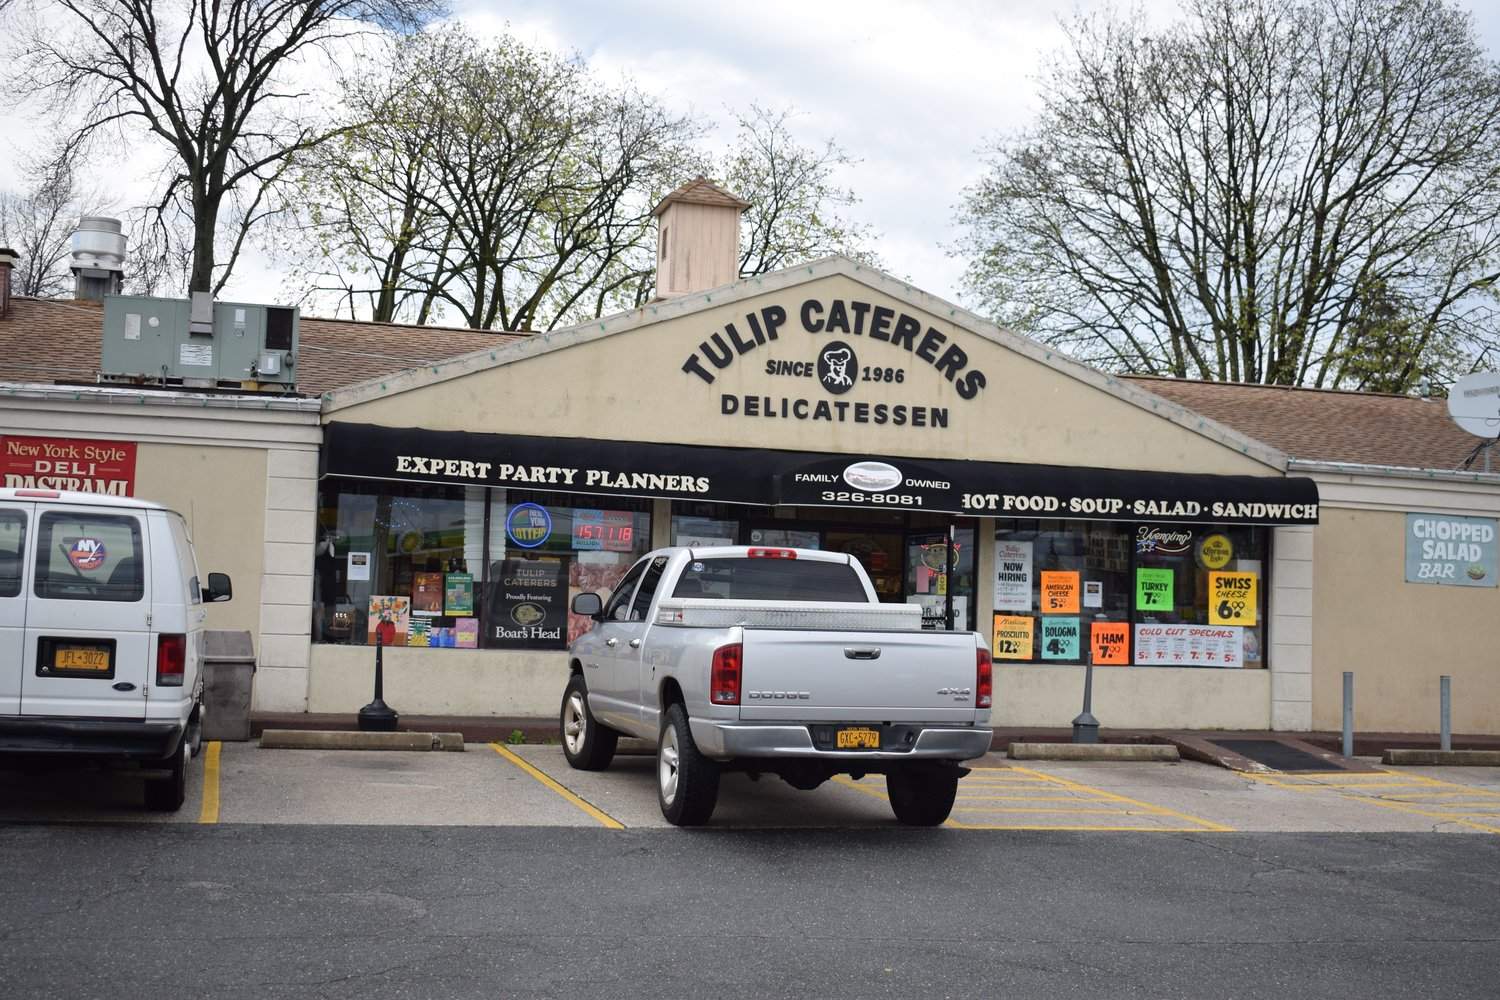 Tulip Caterers has been at Tulip Avenue and New Hyde Park Road for 33 years.